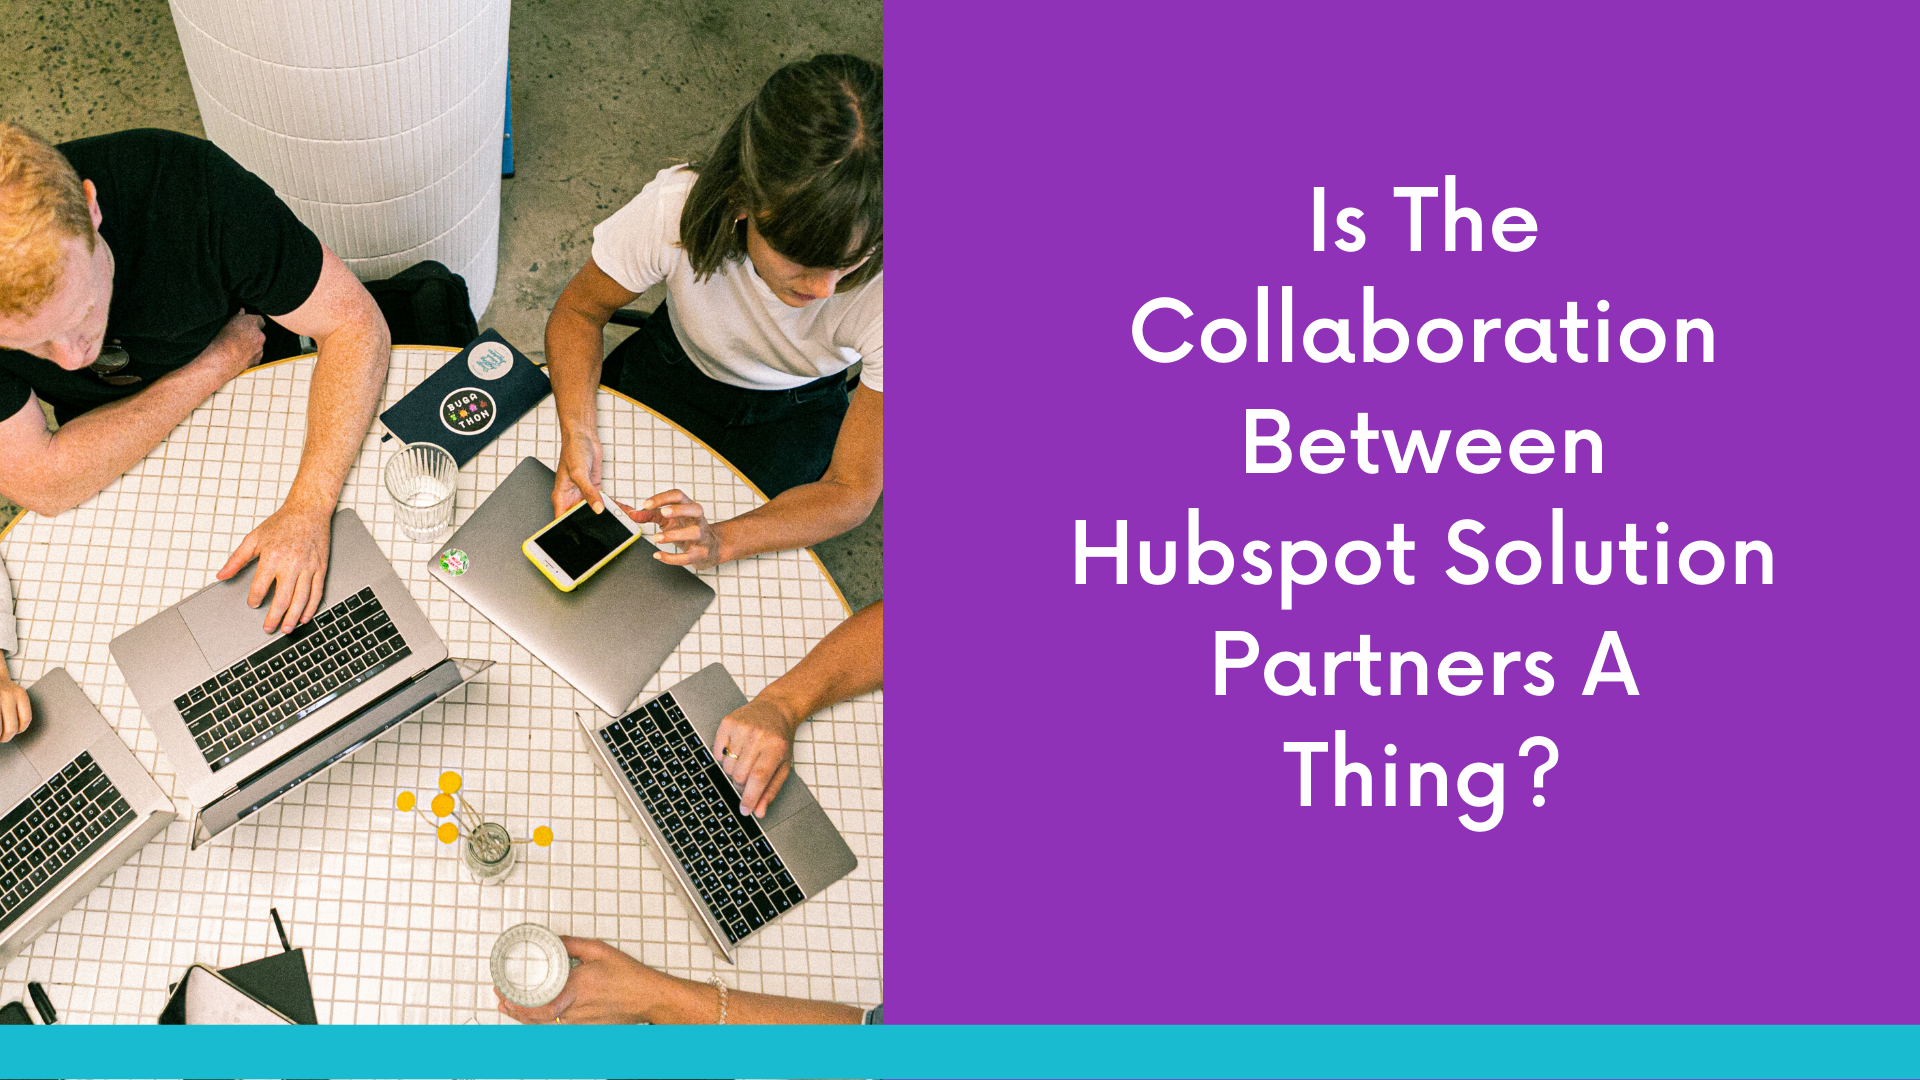 hubspot-solution-partner-collaboration